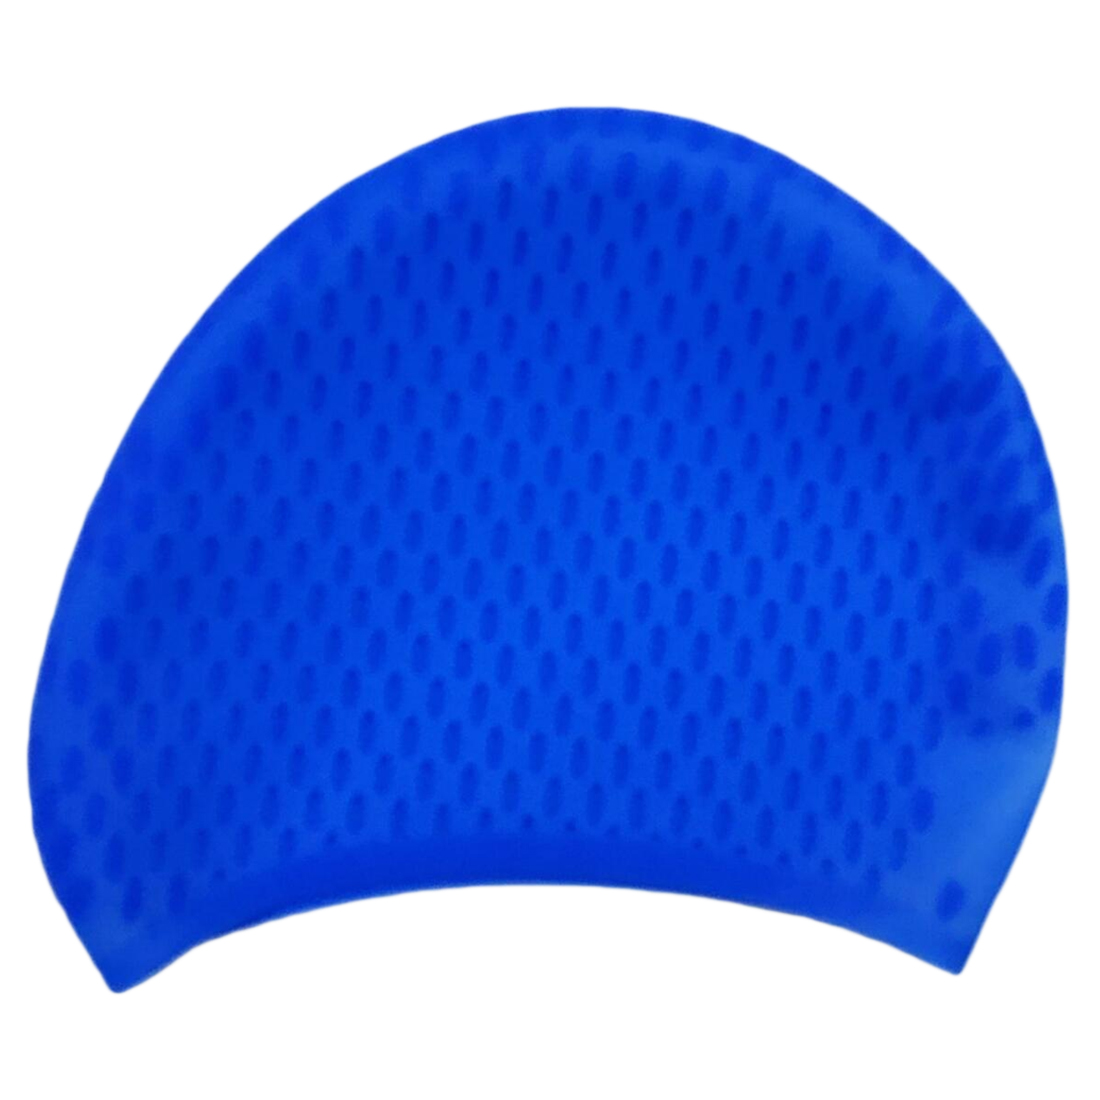 Hot Sell Multicolor Silicone Swimming Hat Cover Protect Ear Long Hair Waterdrop Swimming Caps